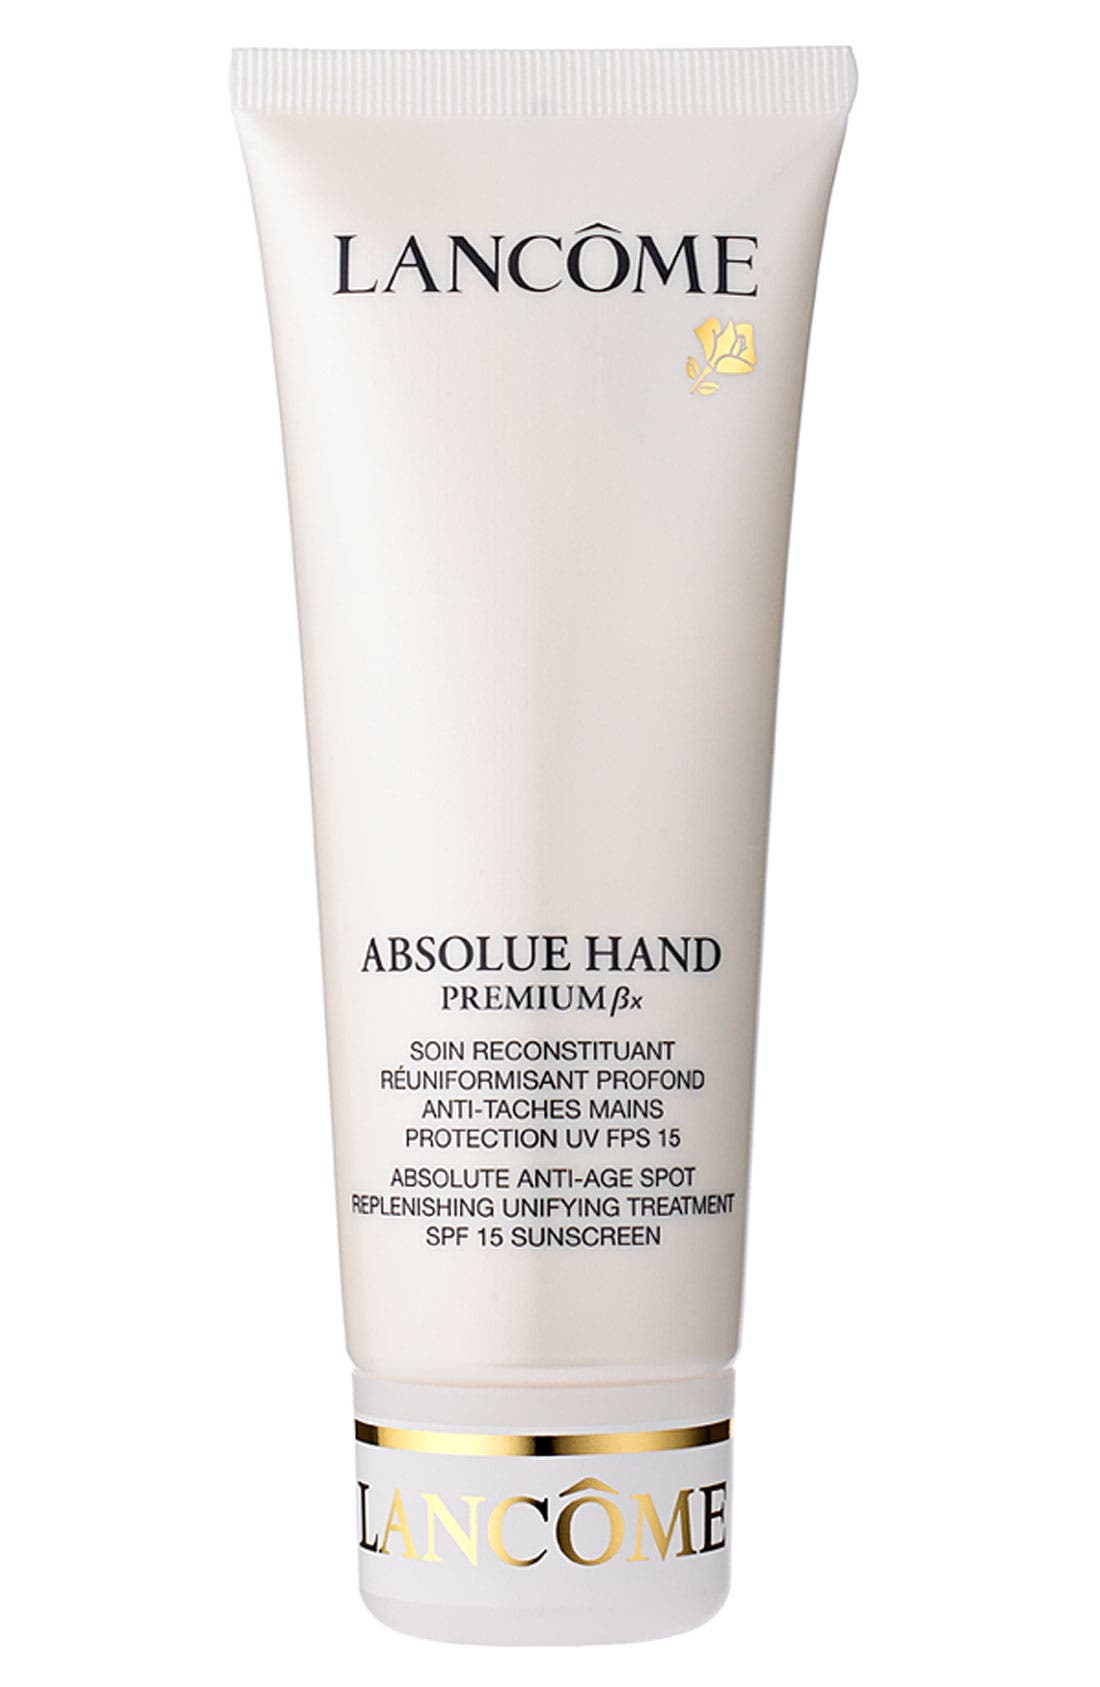 Lancôme Absolue Premium Bx Hand SPF 15 Sunscreen